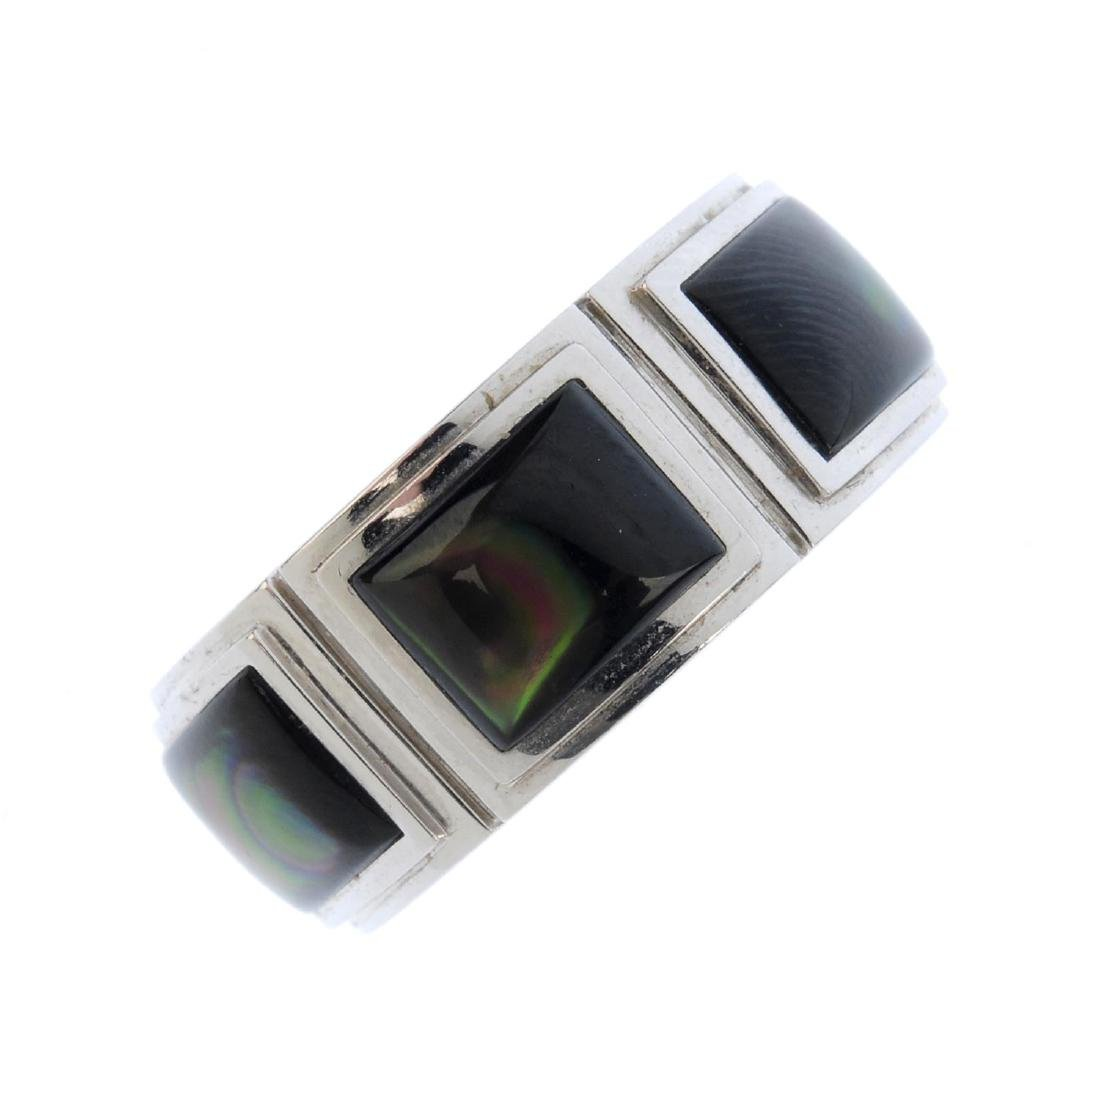 MAUBOUSSIN - a mother-of-pearl ring. Designed as three